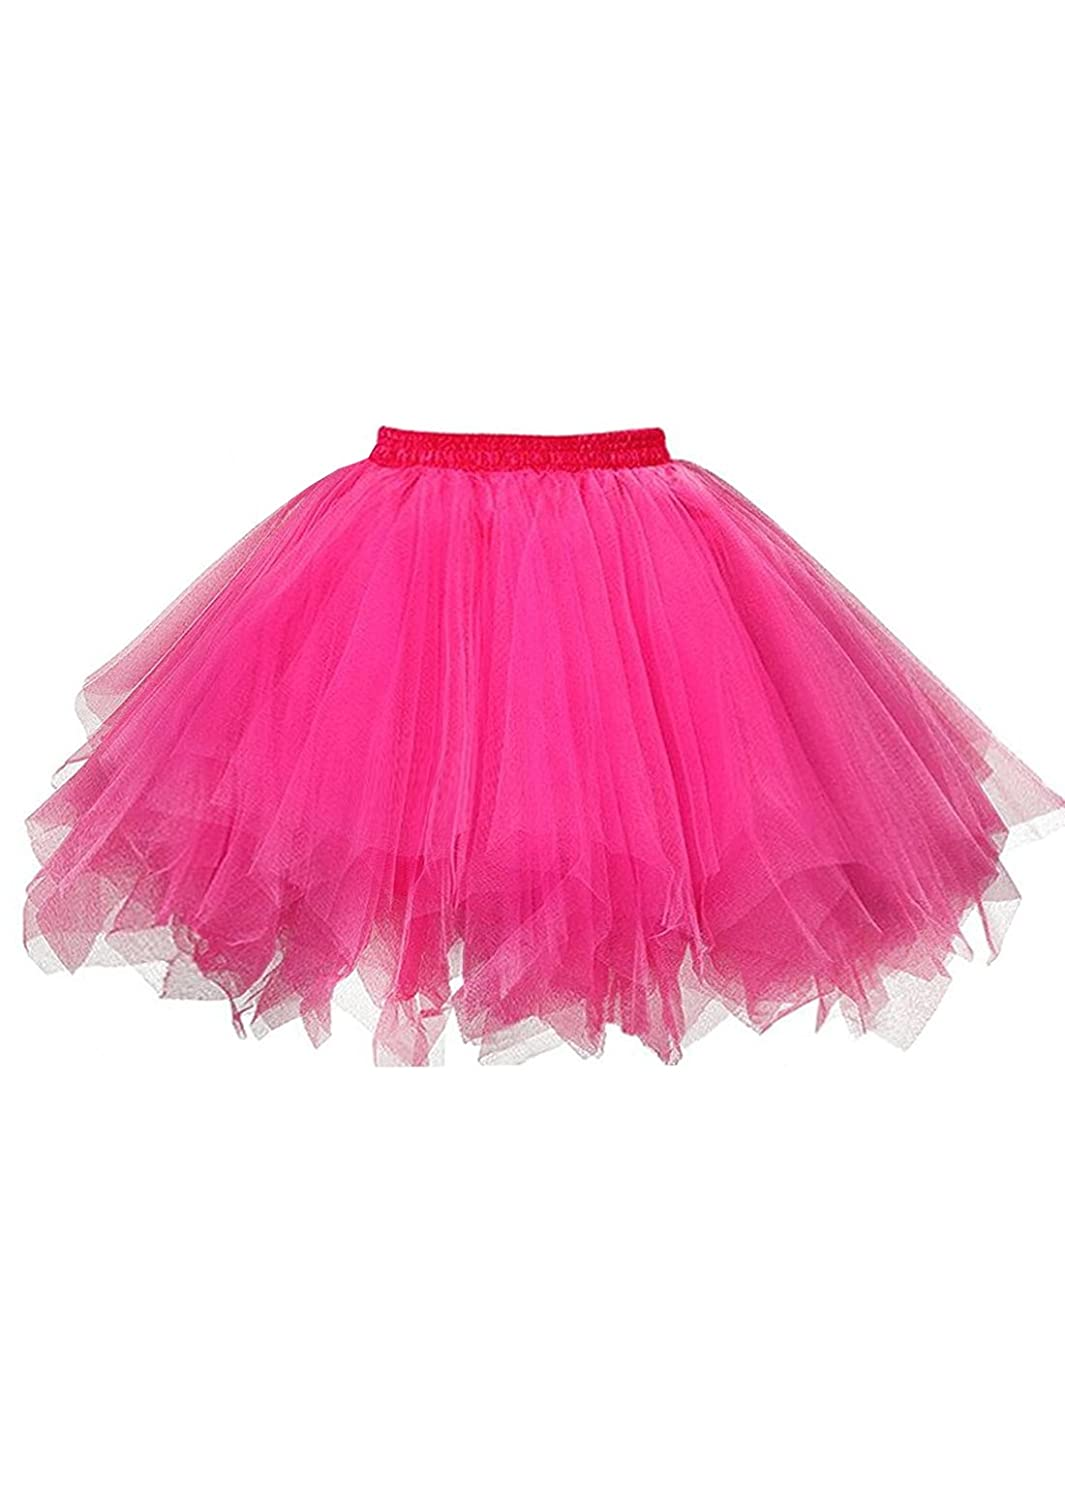 Hot Pink malishow Womens Short Tutu Costume Tulle Skirt Dance Multicolord Party Petticoat